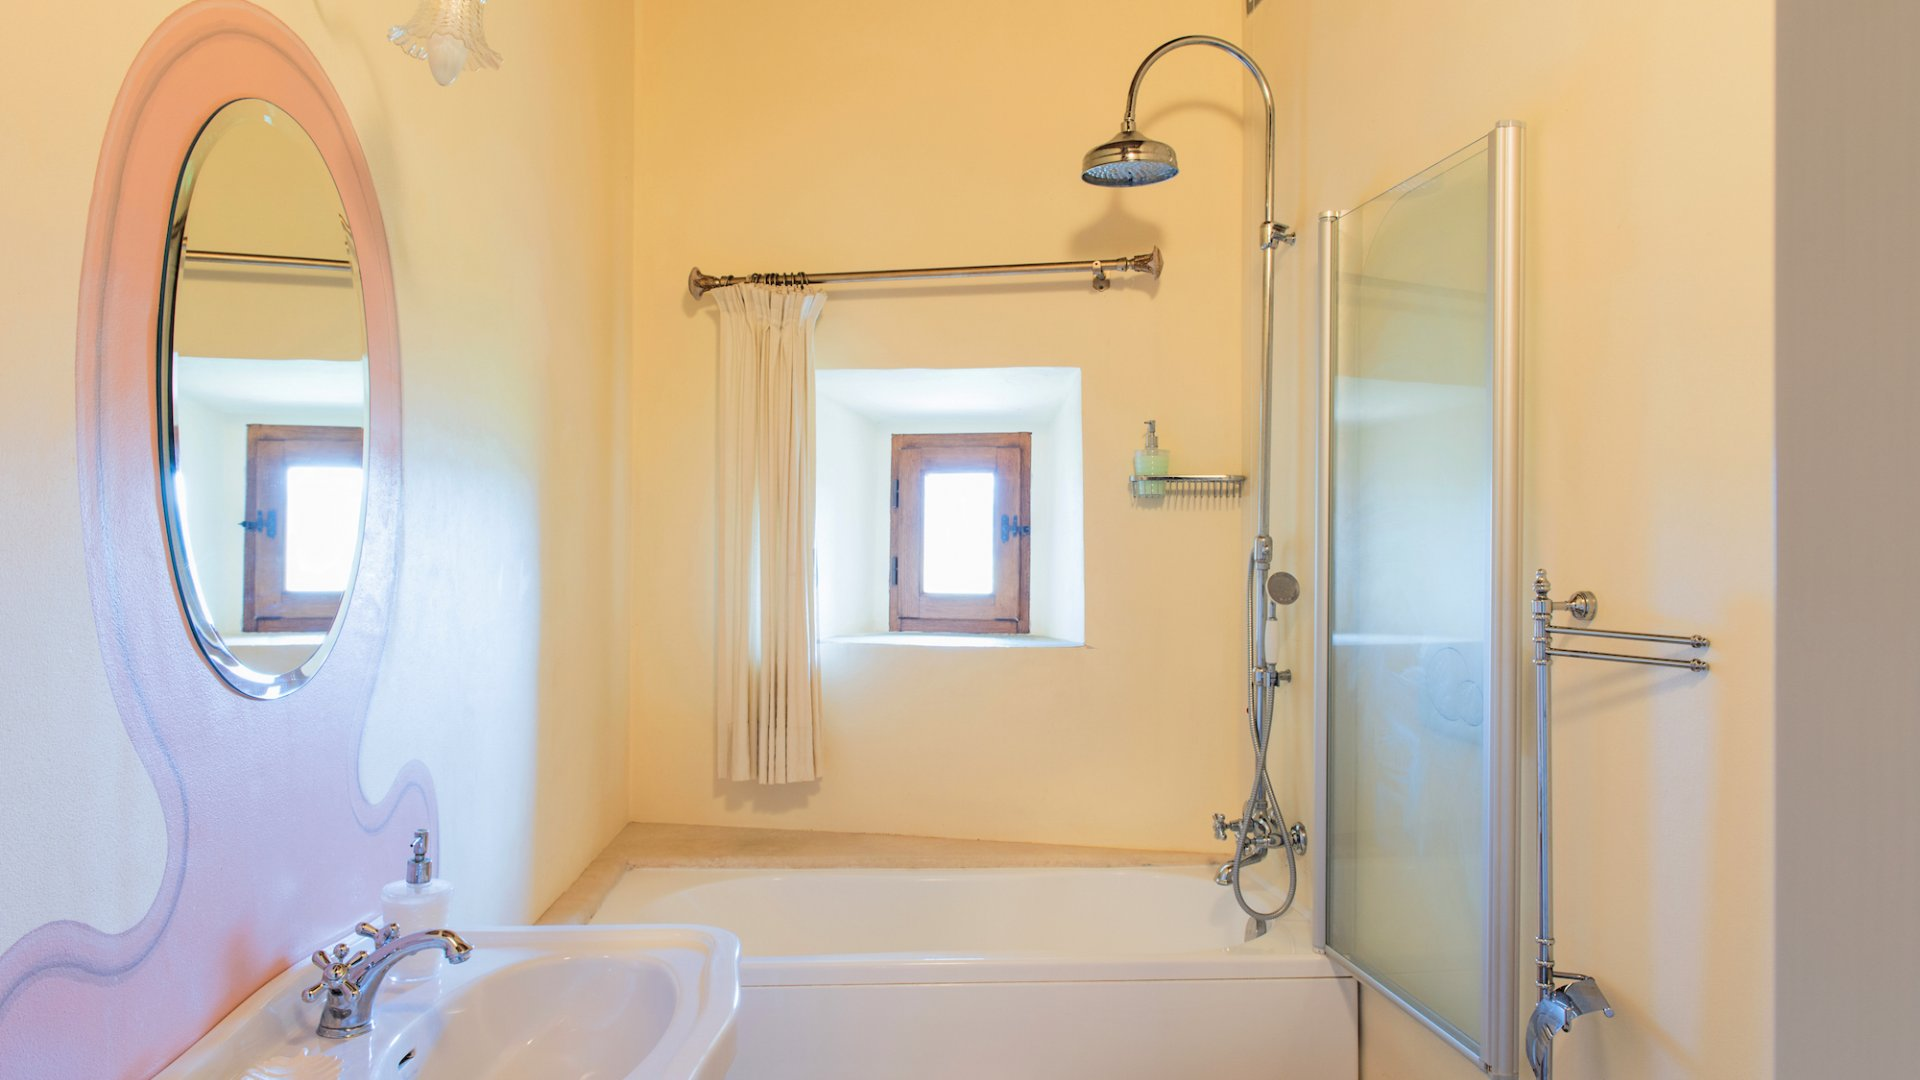 en suite bathroom of bedroom n.1